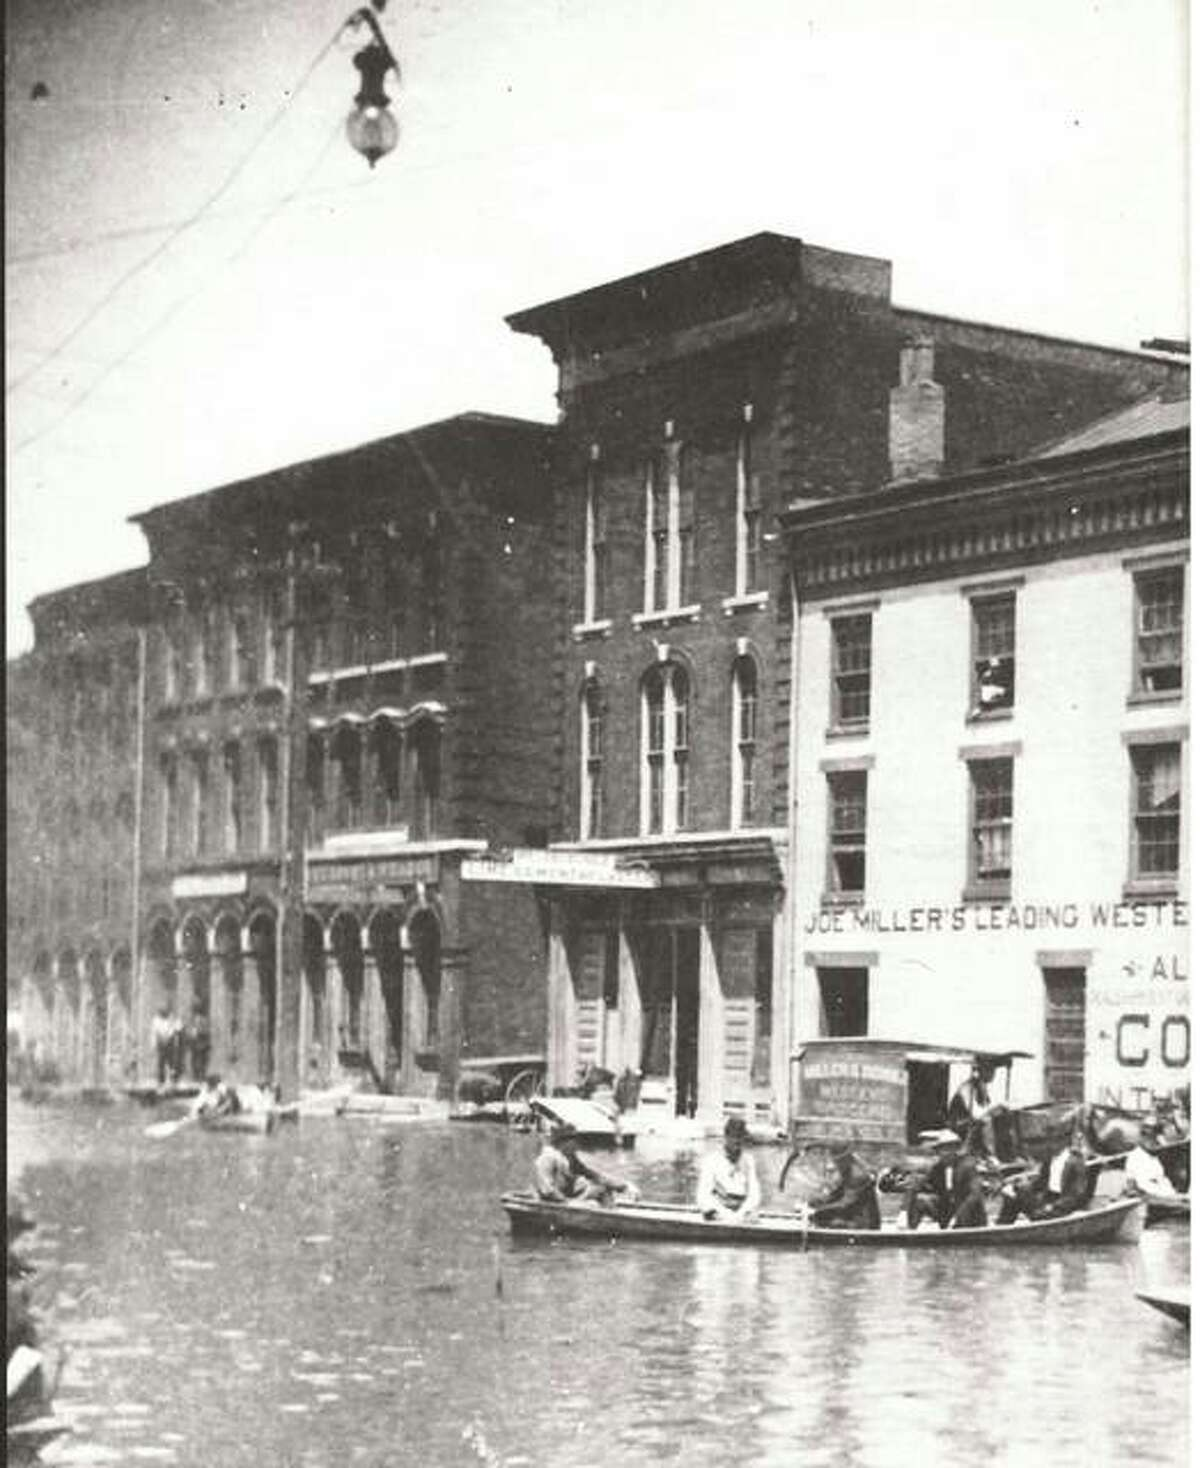 Joe Miller's West End Grocery was rather unique among groceries. The proprietors had to be prepared to fight flood waters from the Mississippi at least once a year. The store was the scene of feverish activity when floodwaters covered Second Street in 1903. The delivery wagon was in water up to its axles. The crowd was gathered to watch the floodwaters creep up State Street. This intersection was a popular place to mark the height of each year's flood. The H.K. Johnston Hardware Co. building carried the measurements of many floods until it was razed.